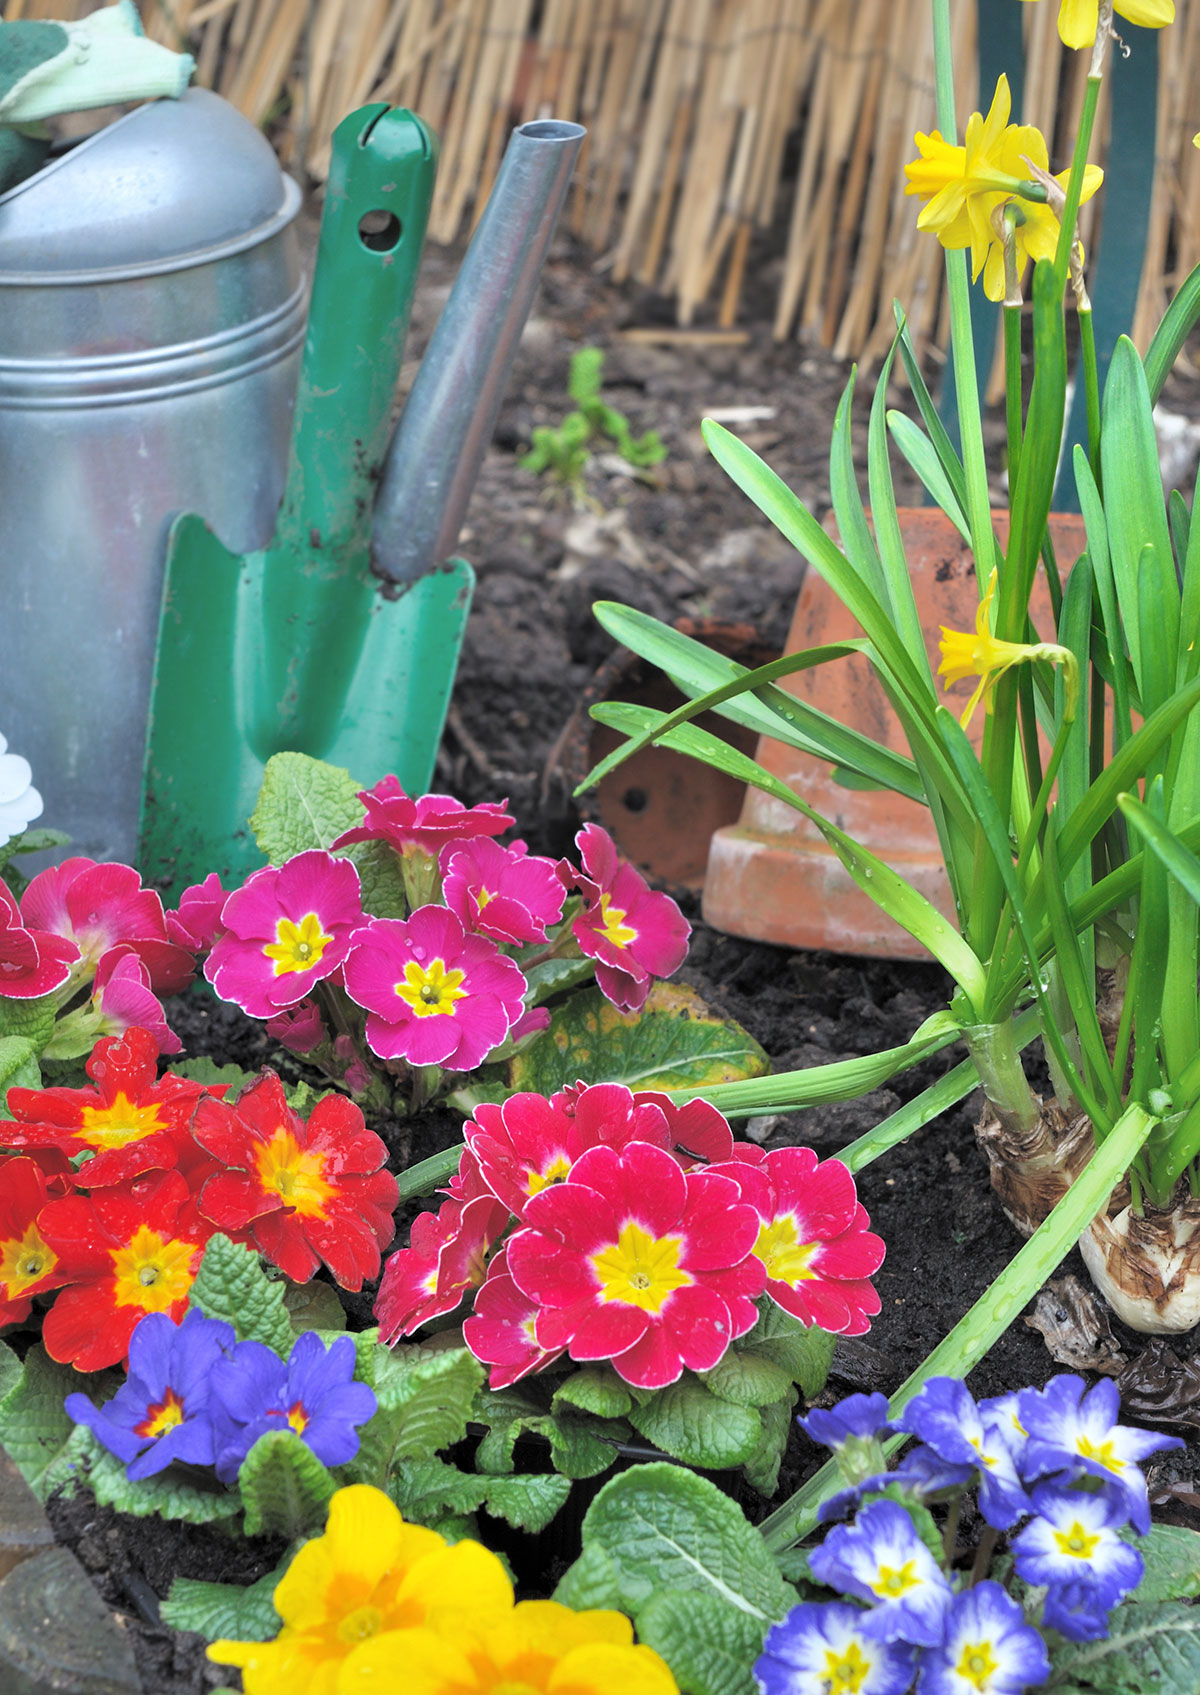 5 Ways to Get Your Garden Ready for Spring